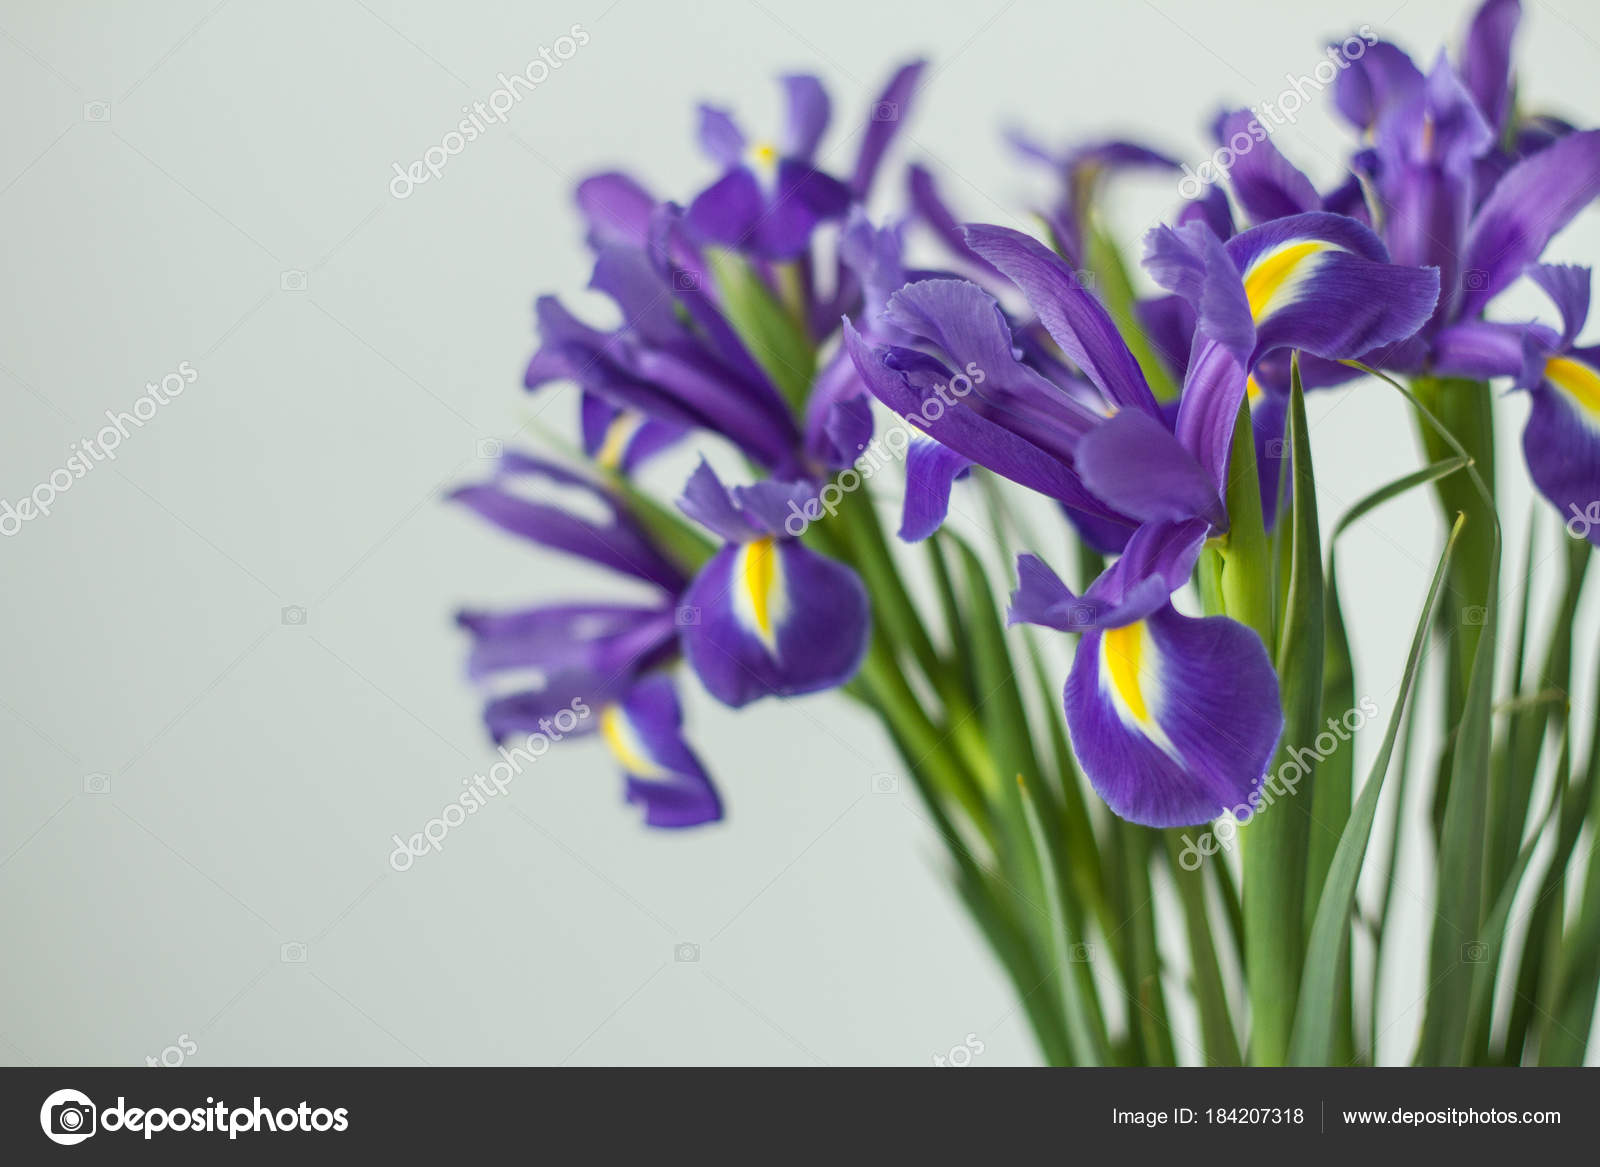 Delicate Holiday Bouquet Iris Flowers Light Background Stock Photo